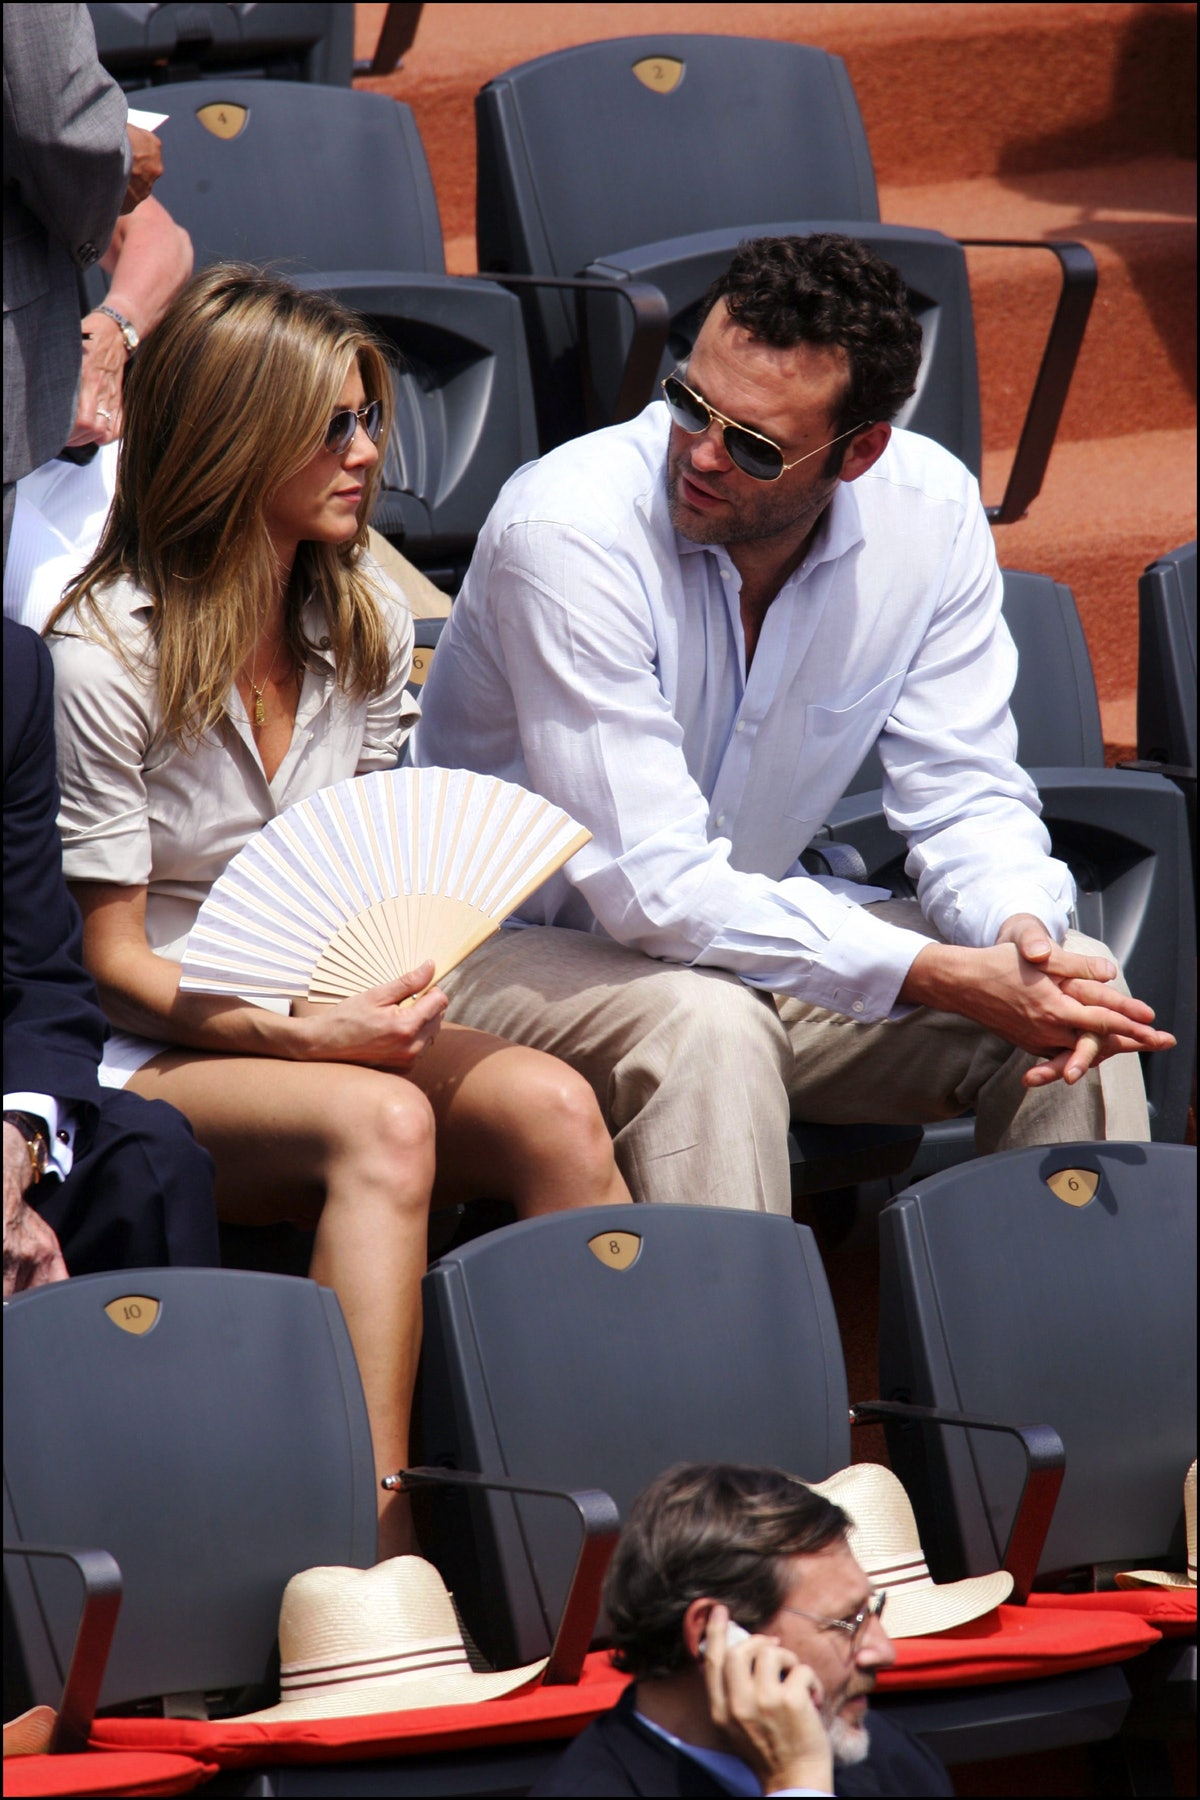 Jennifer Aniston and Vince Vaughn dated.